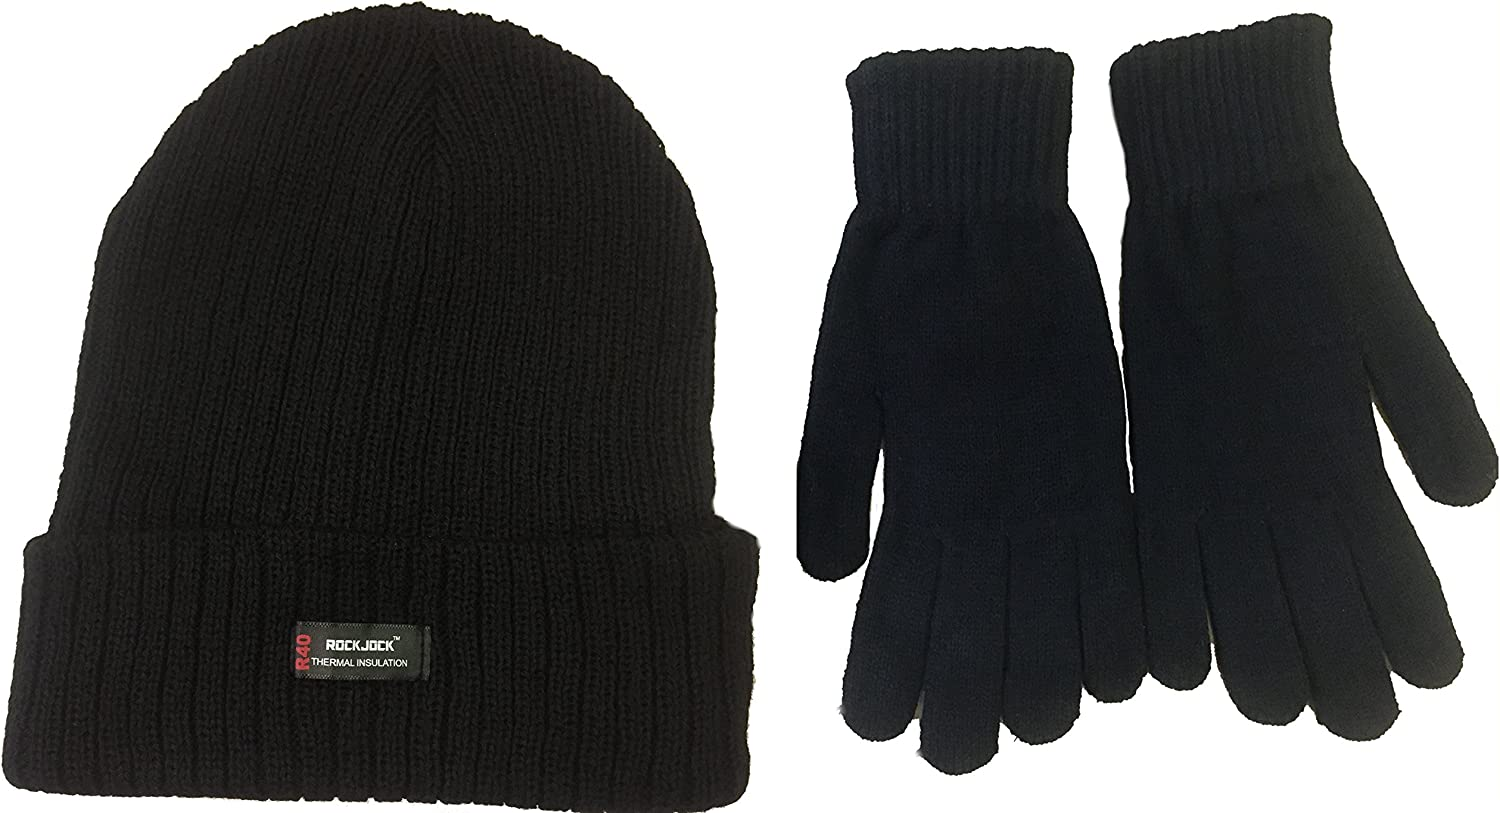 MENS ROCKJOCK THERMAL HAT CHUNKY KNIT WOOLY INSULATED BLACK 40 GRAM WINTER NEW